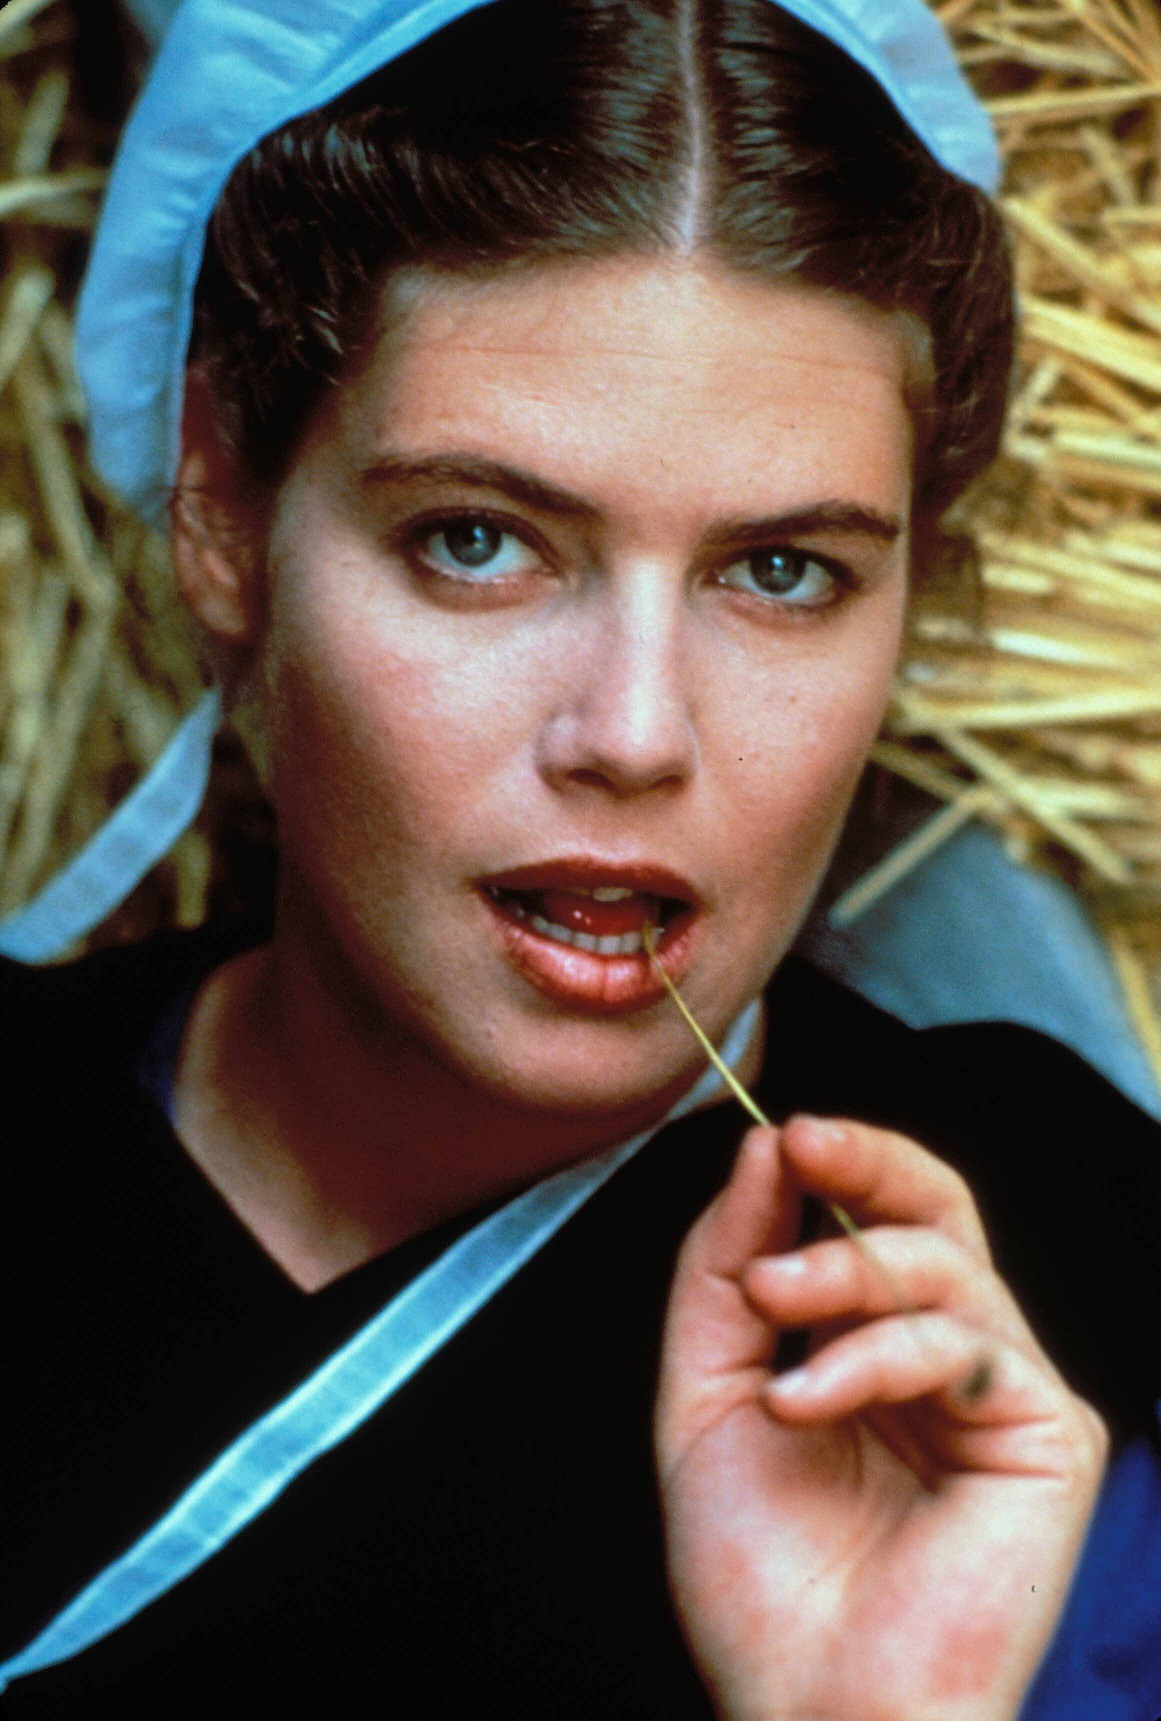 191 Qu 233 Fue De Kelly Mcgillis La Instructora De Top Gun